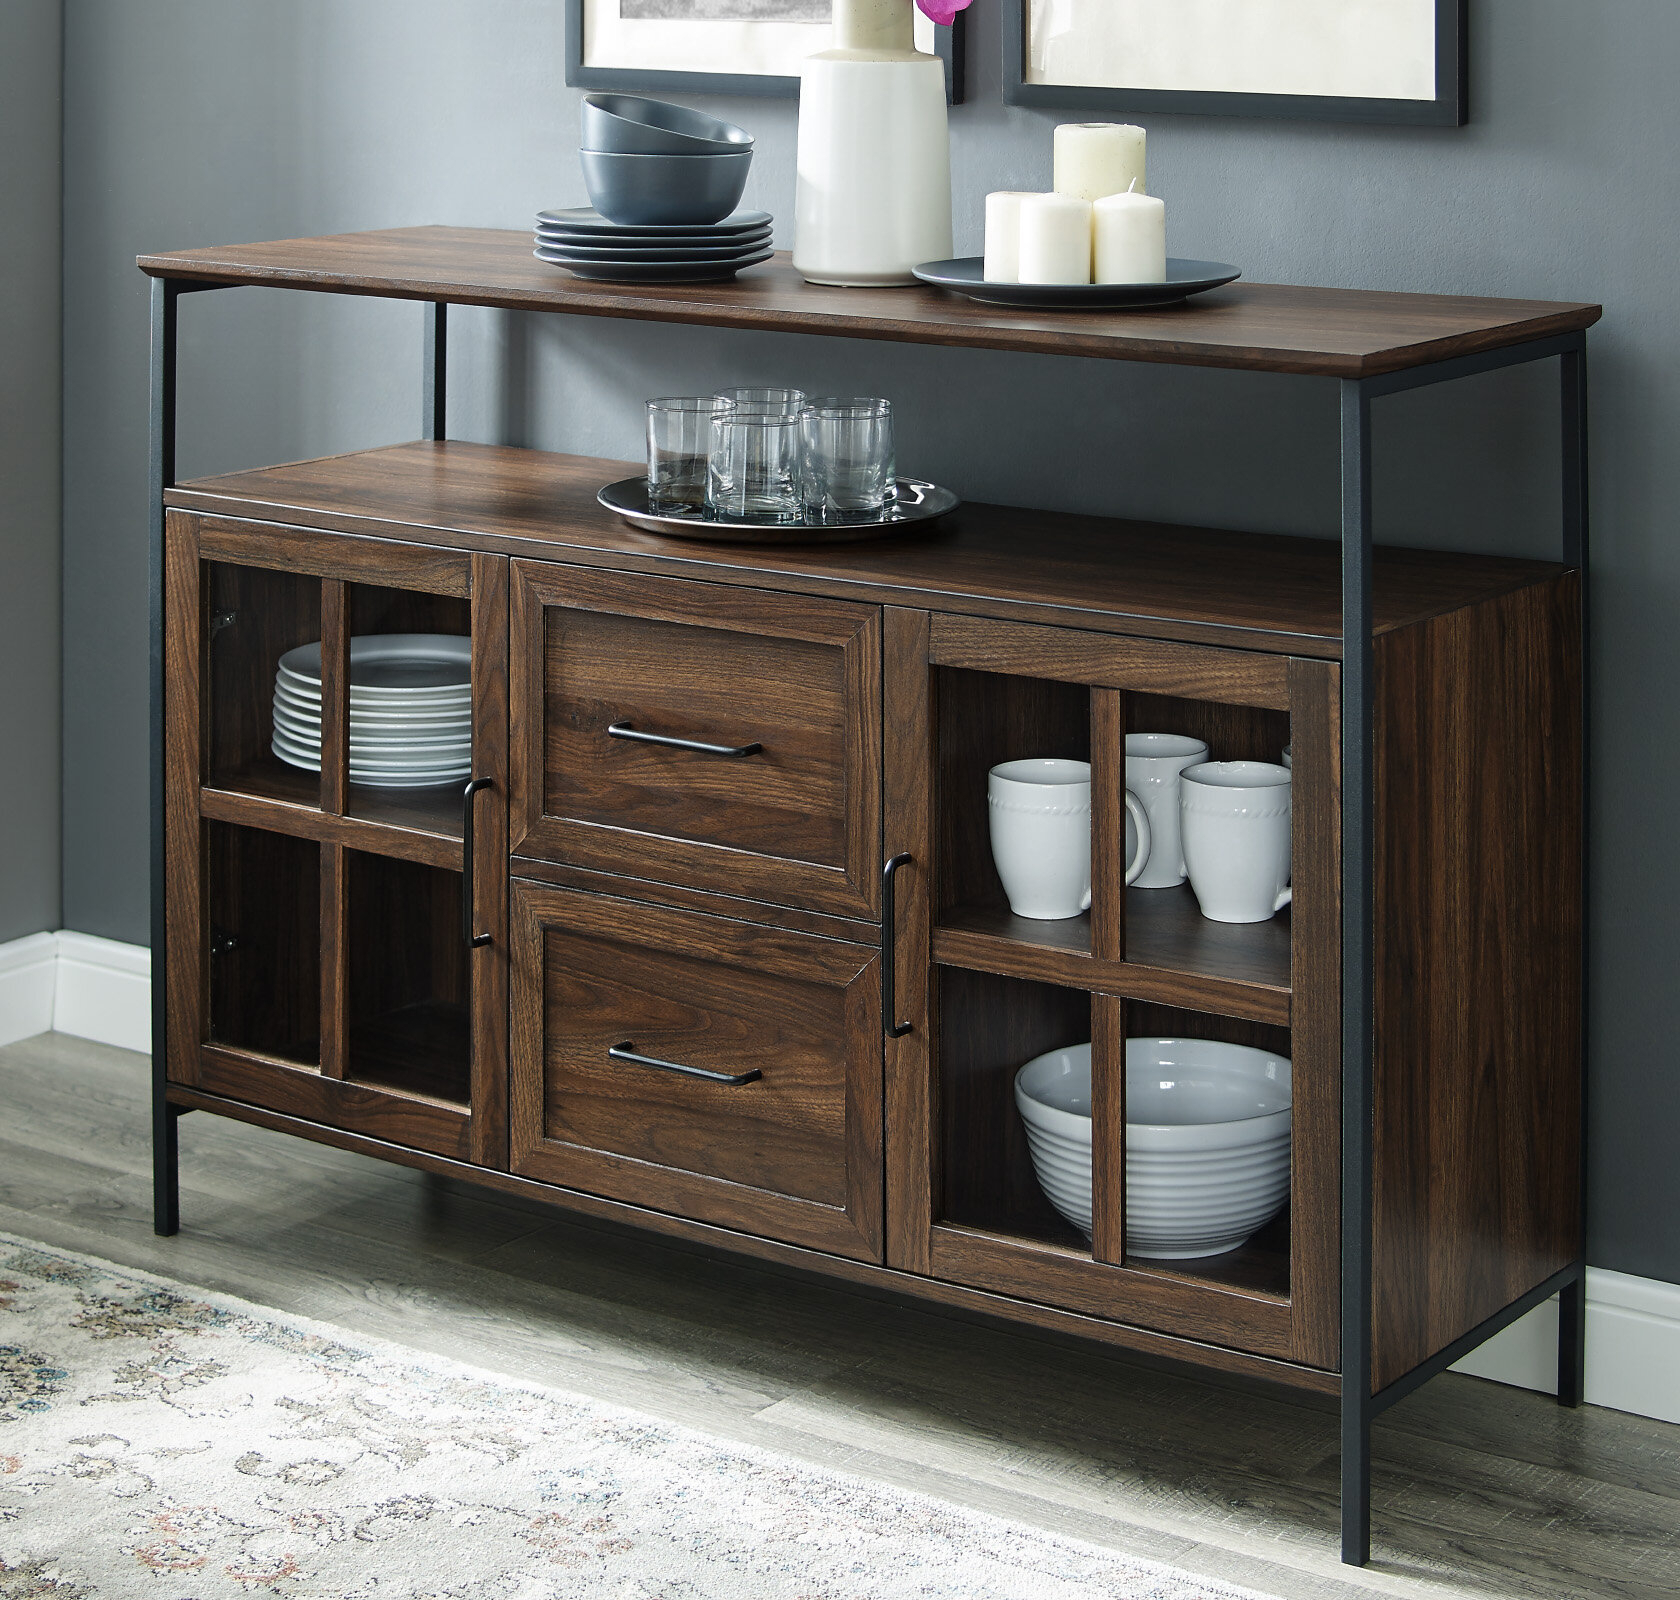 Narrow Buffet Table | Wayfair Regarding Contemporary Wooden Buffets With Four Open Compartments And Metal Tapered Legs (View 24 of 30)